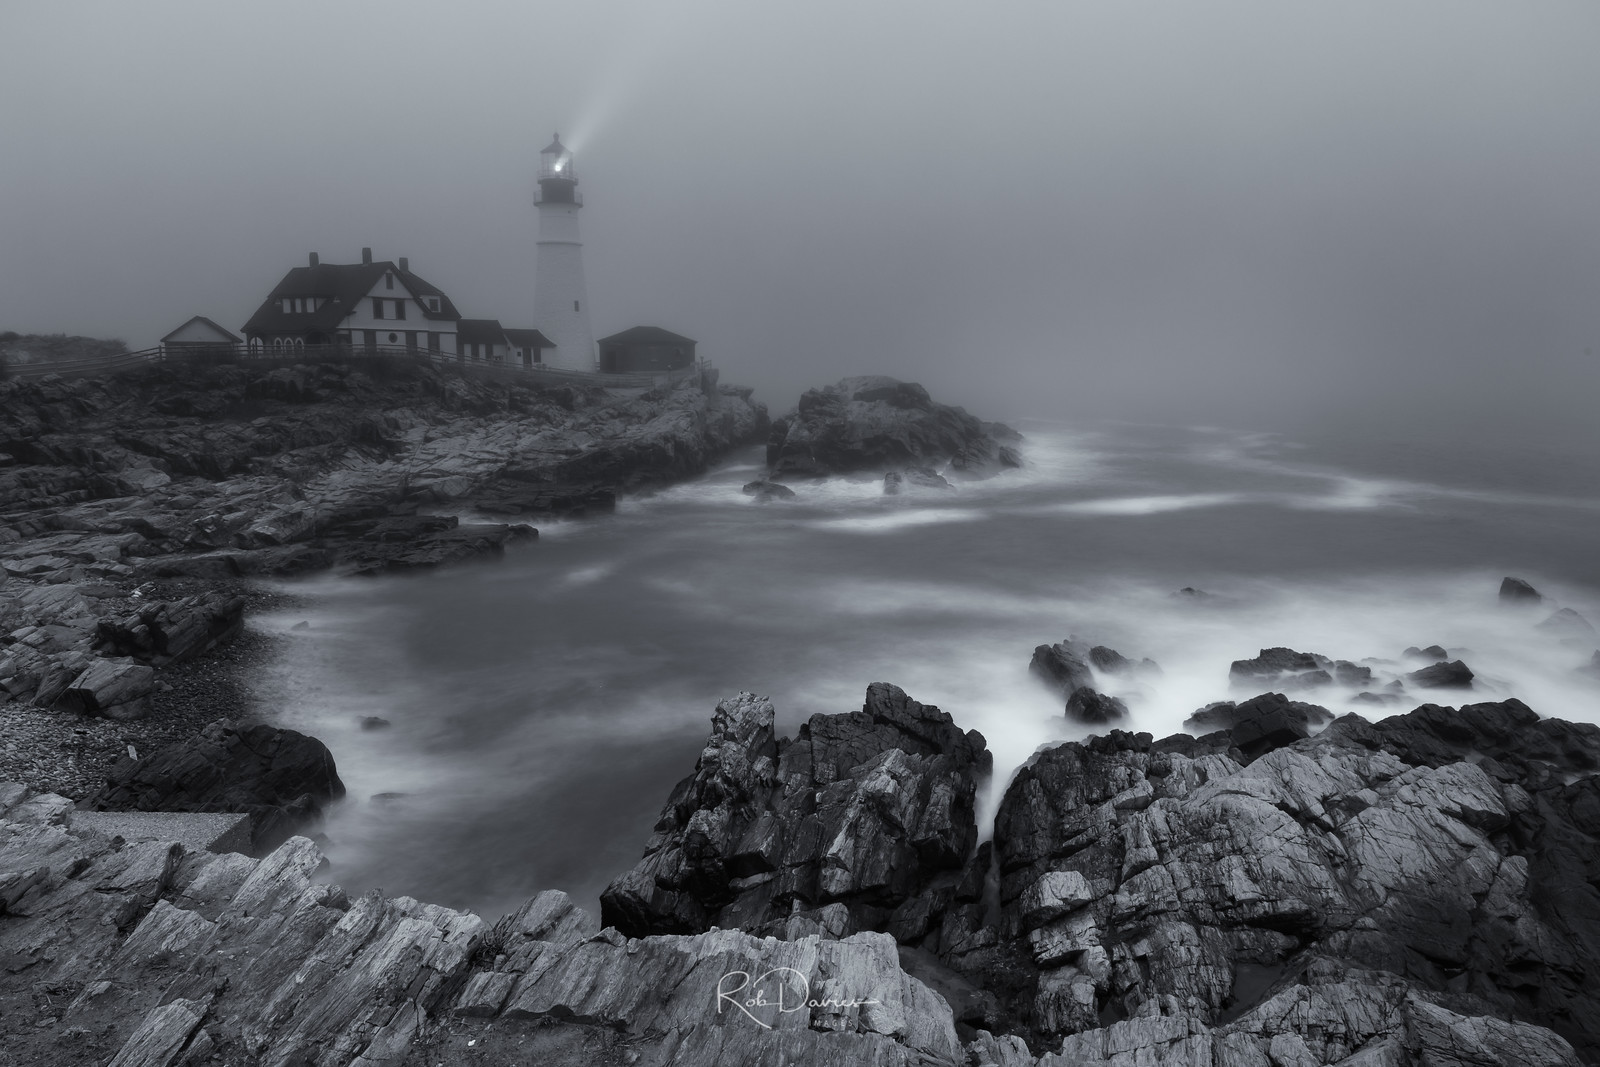 Portland Lighthouse in the fog - final image